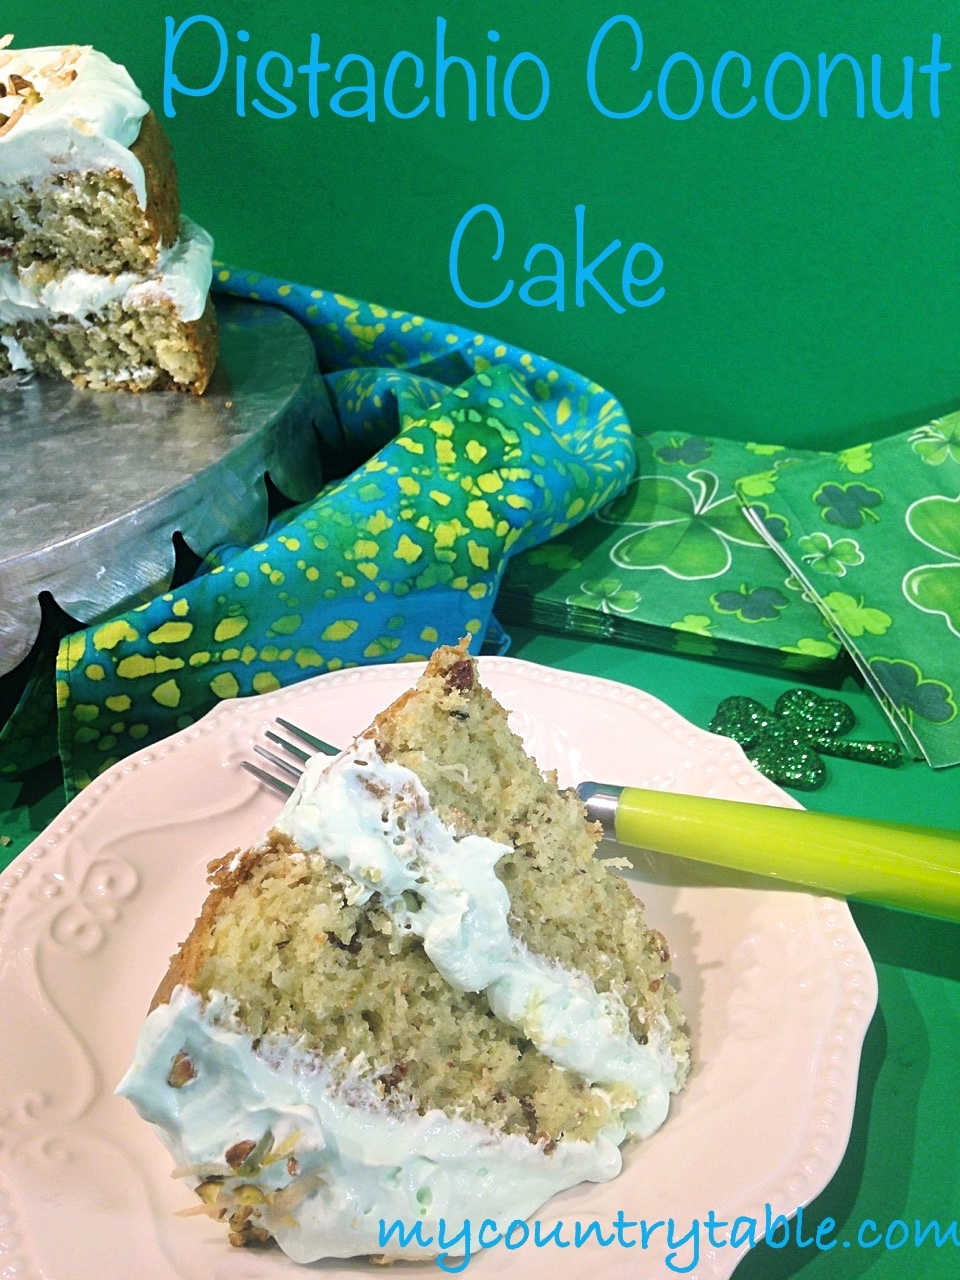 Pistachio Coconut Cake - My Country Table